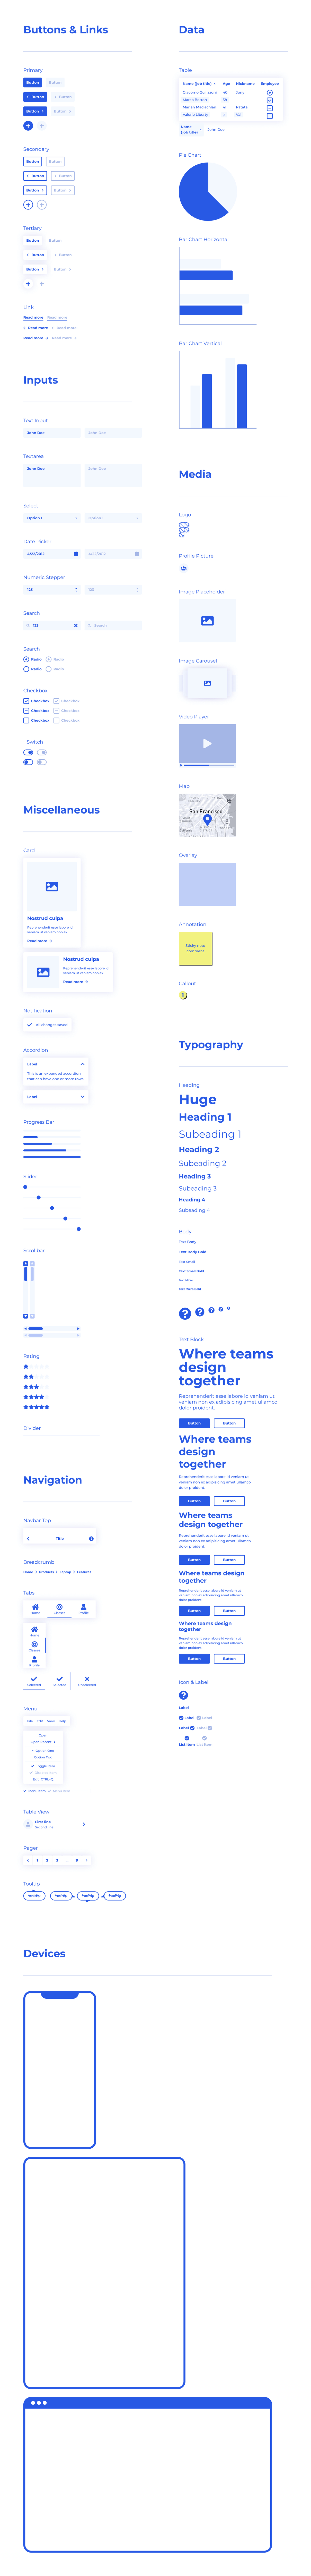 Wirefigma Free UI Kit - Design websites and applications faster and focus on what really matters–your ideas.